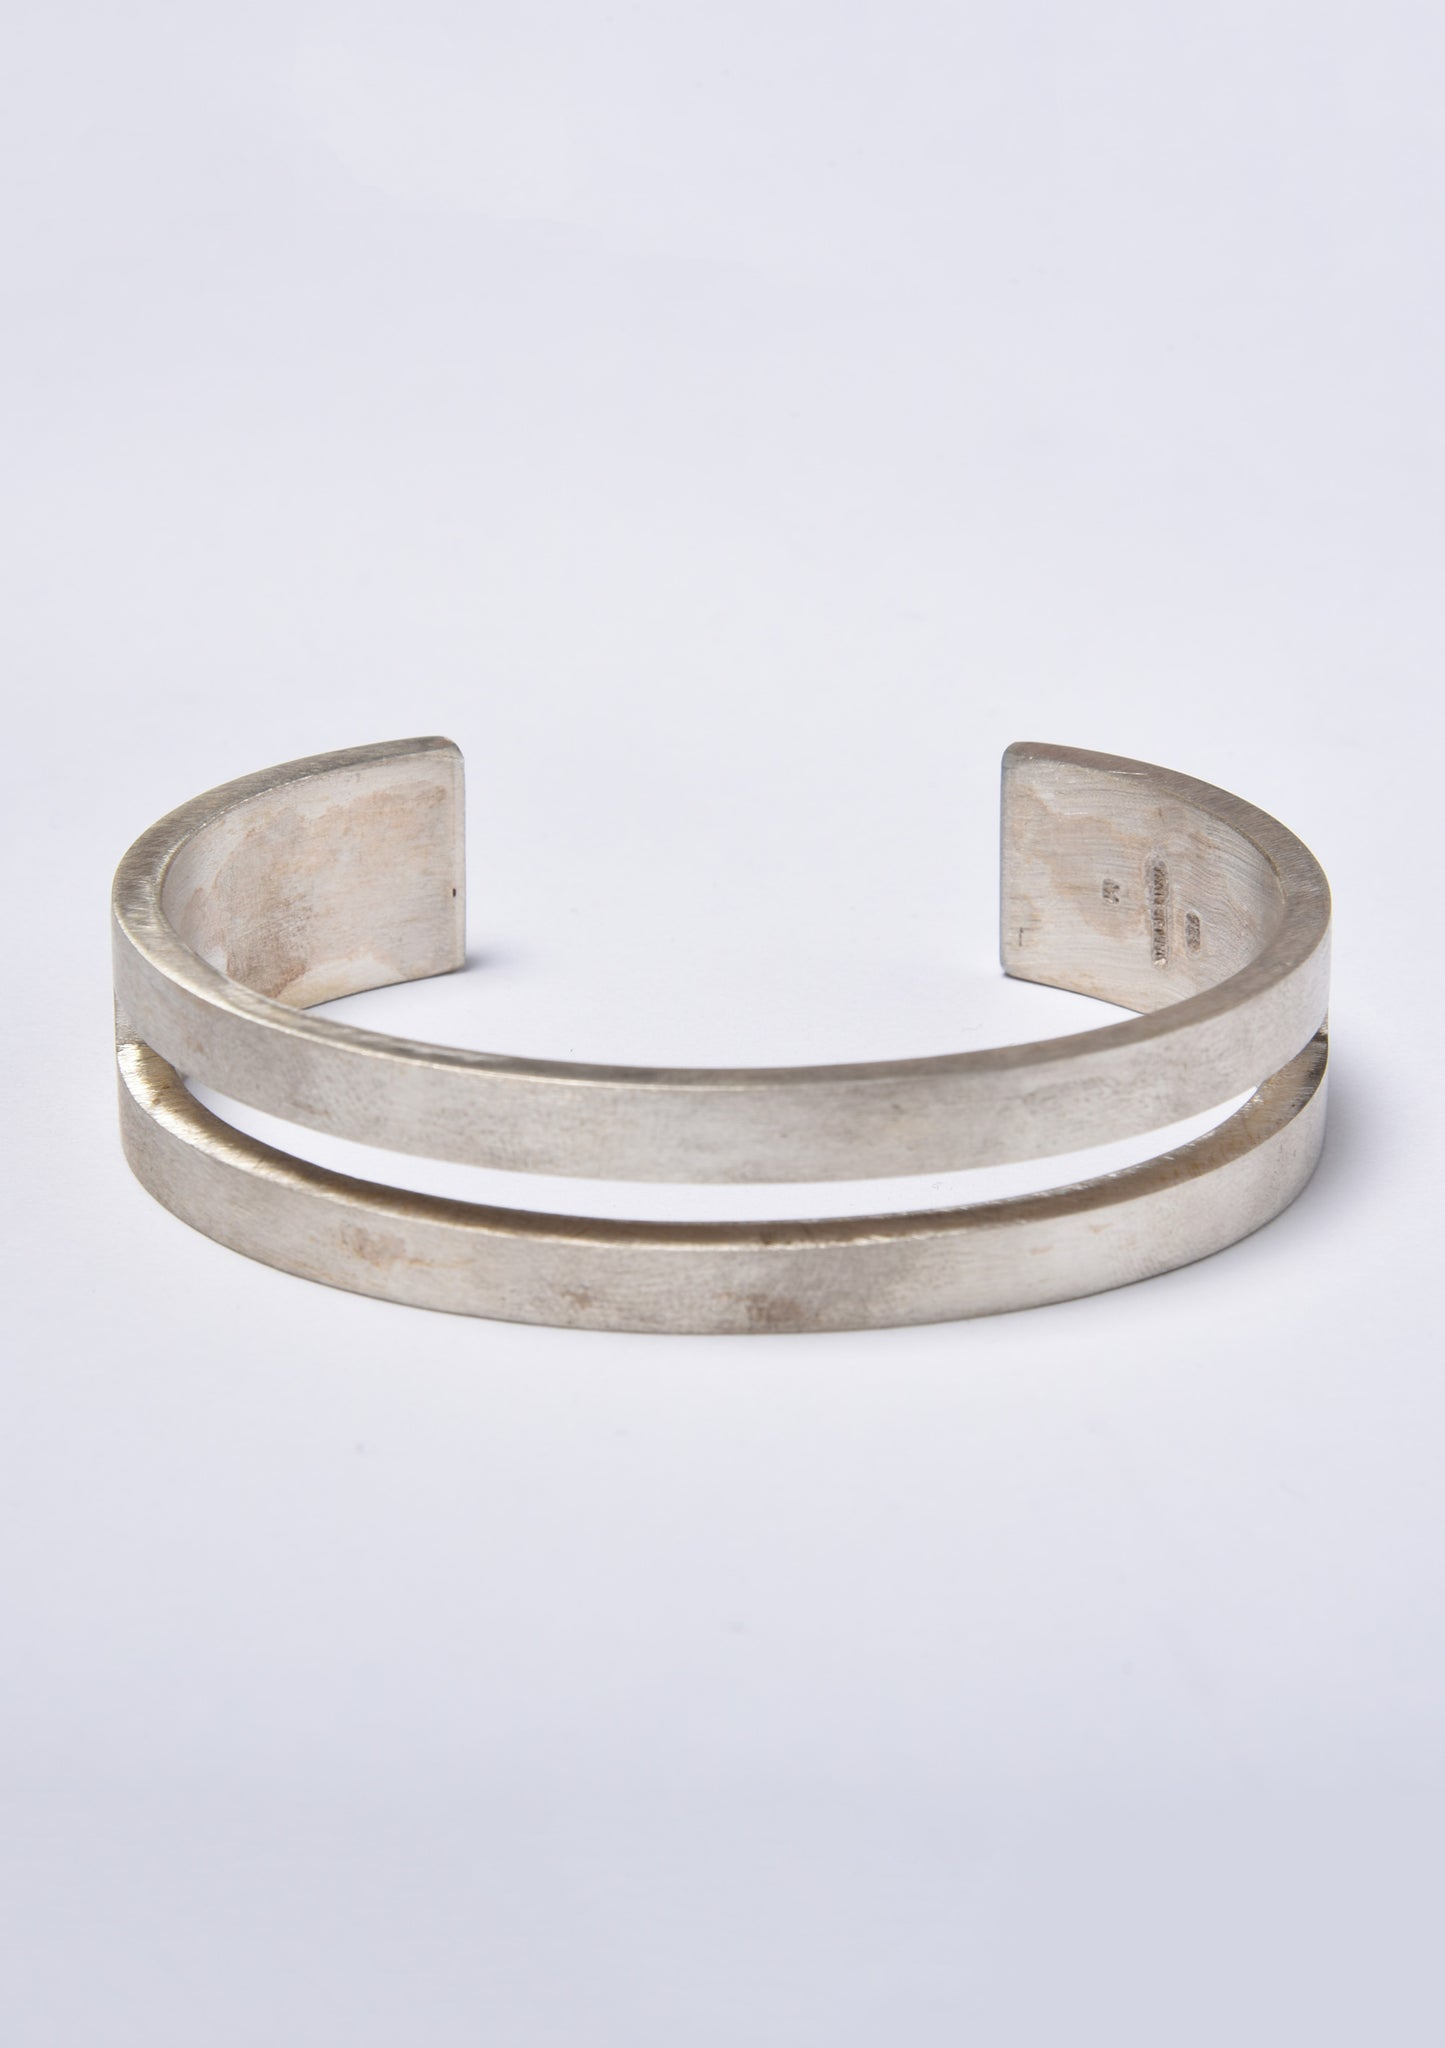 Parts of Four Ultra Reduction Slit Bracelet